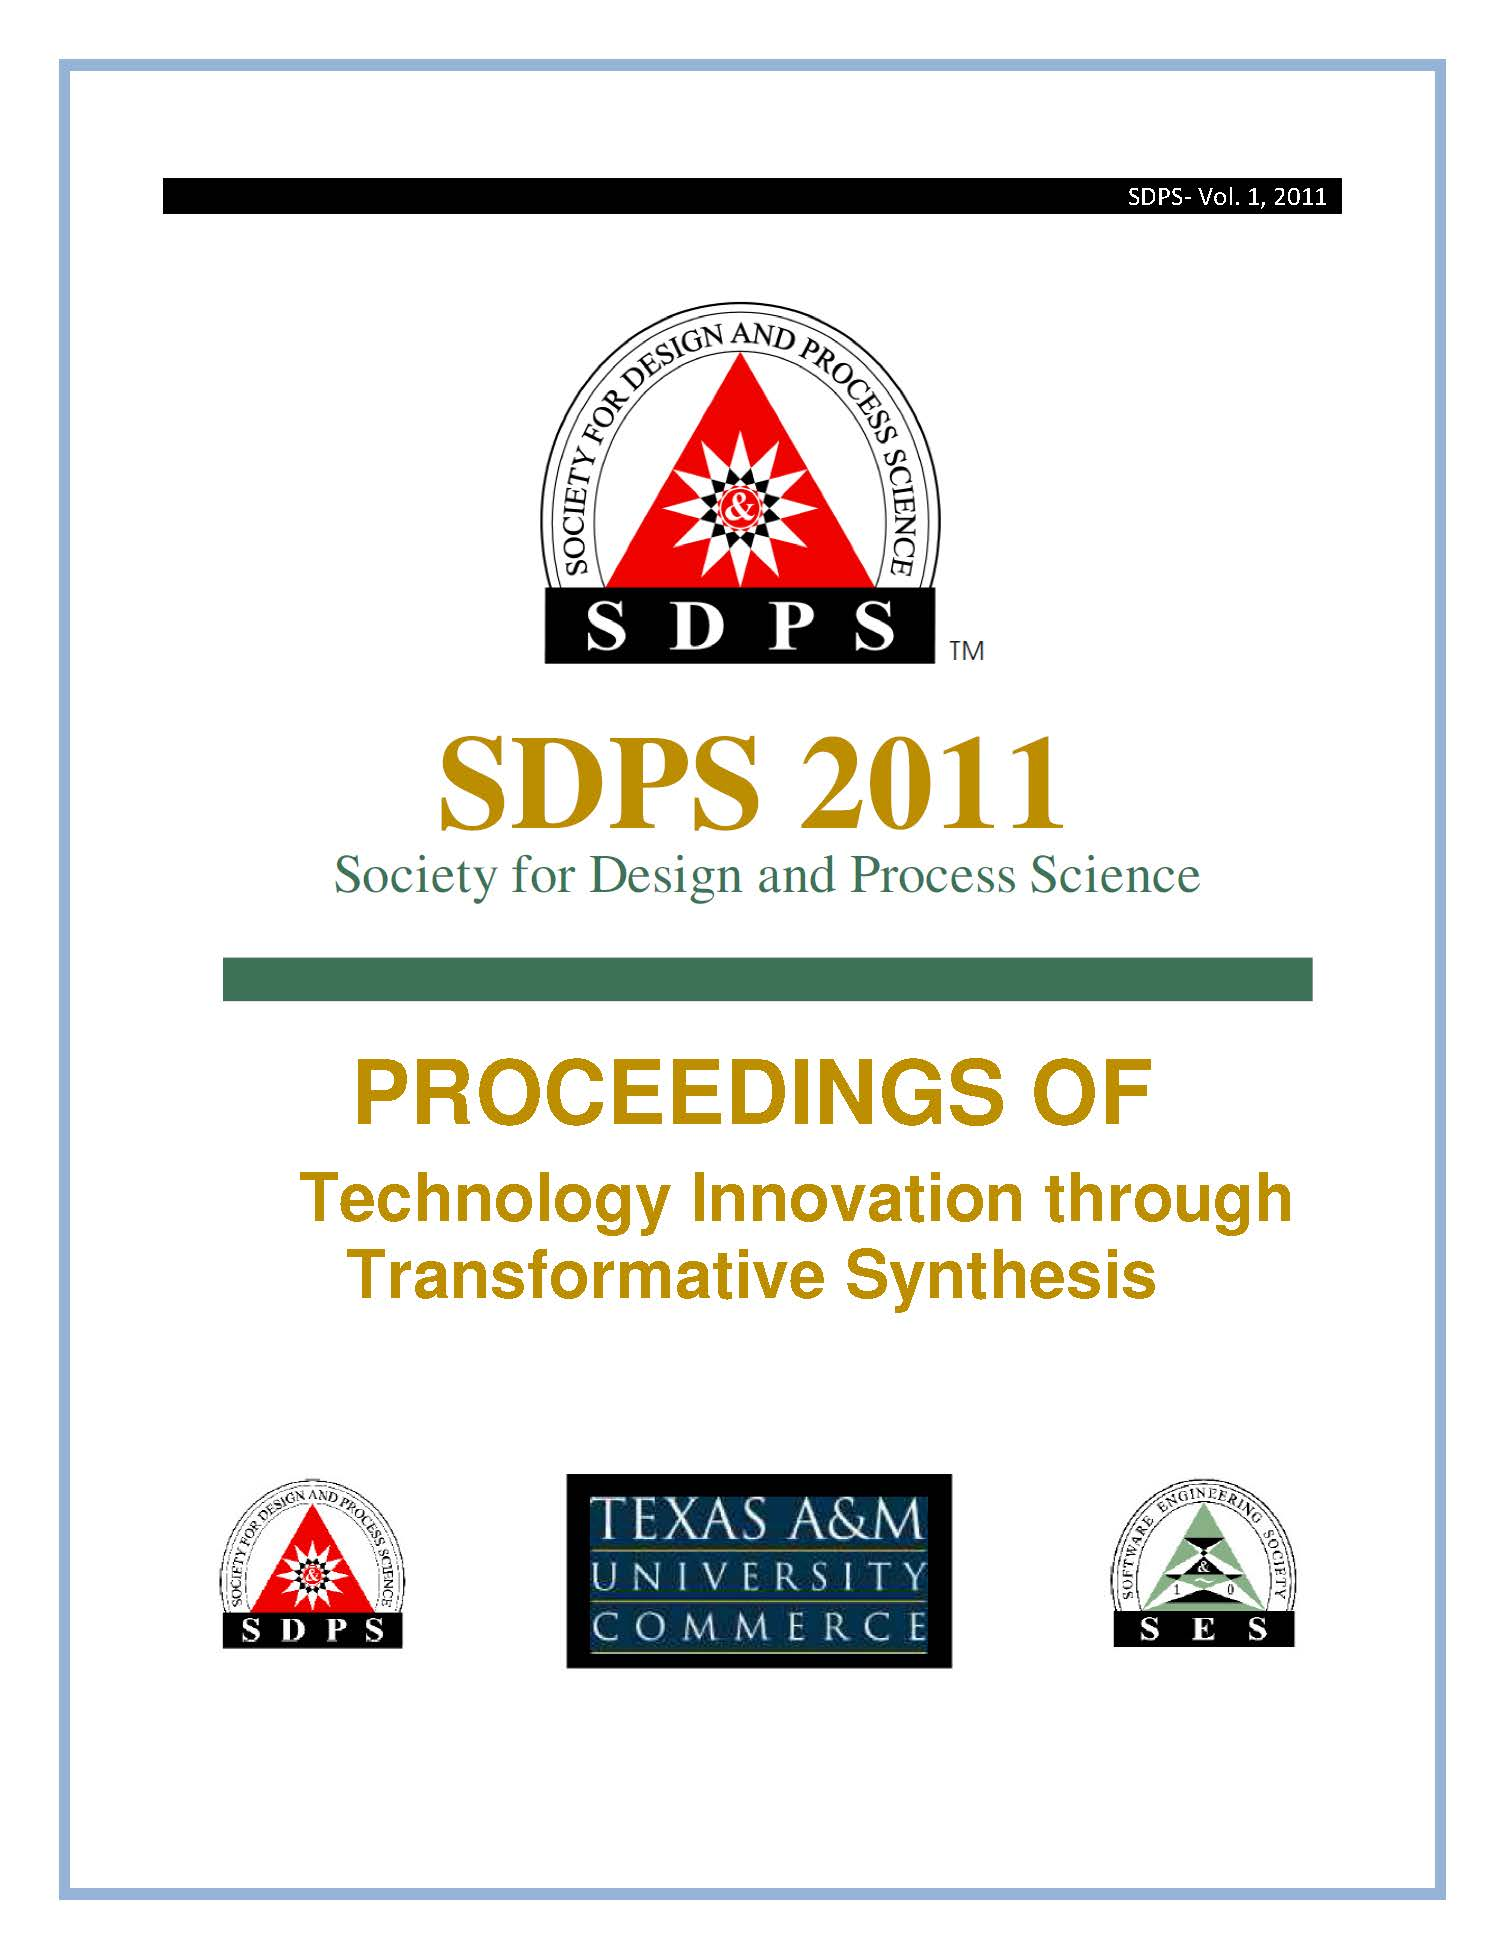 SDPS 2011 proceedings cover